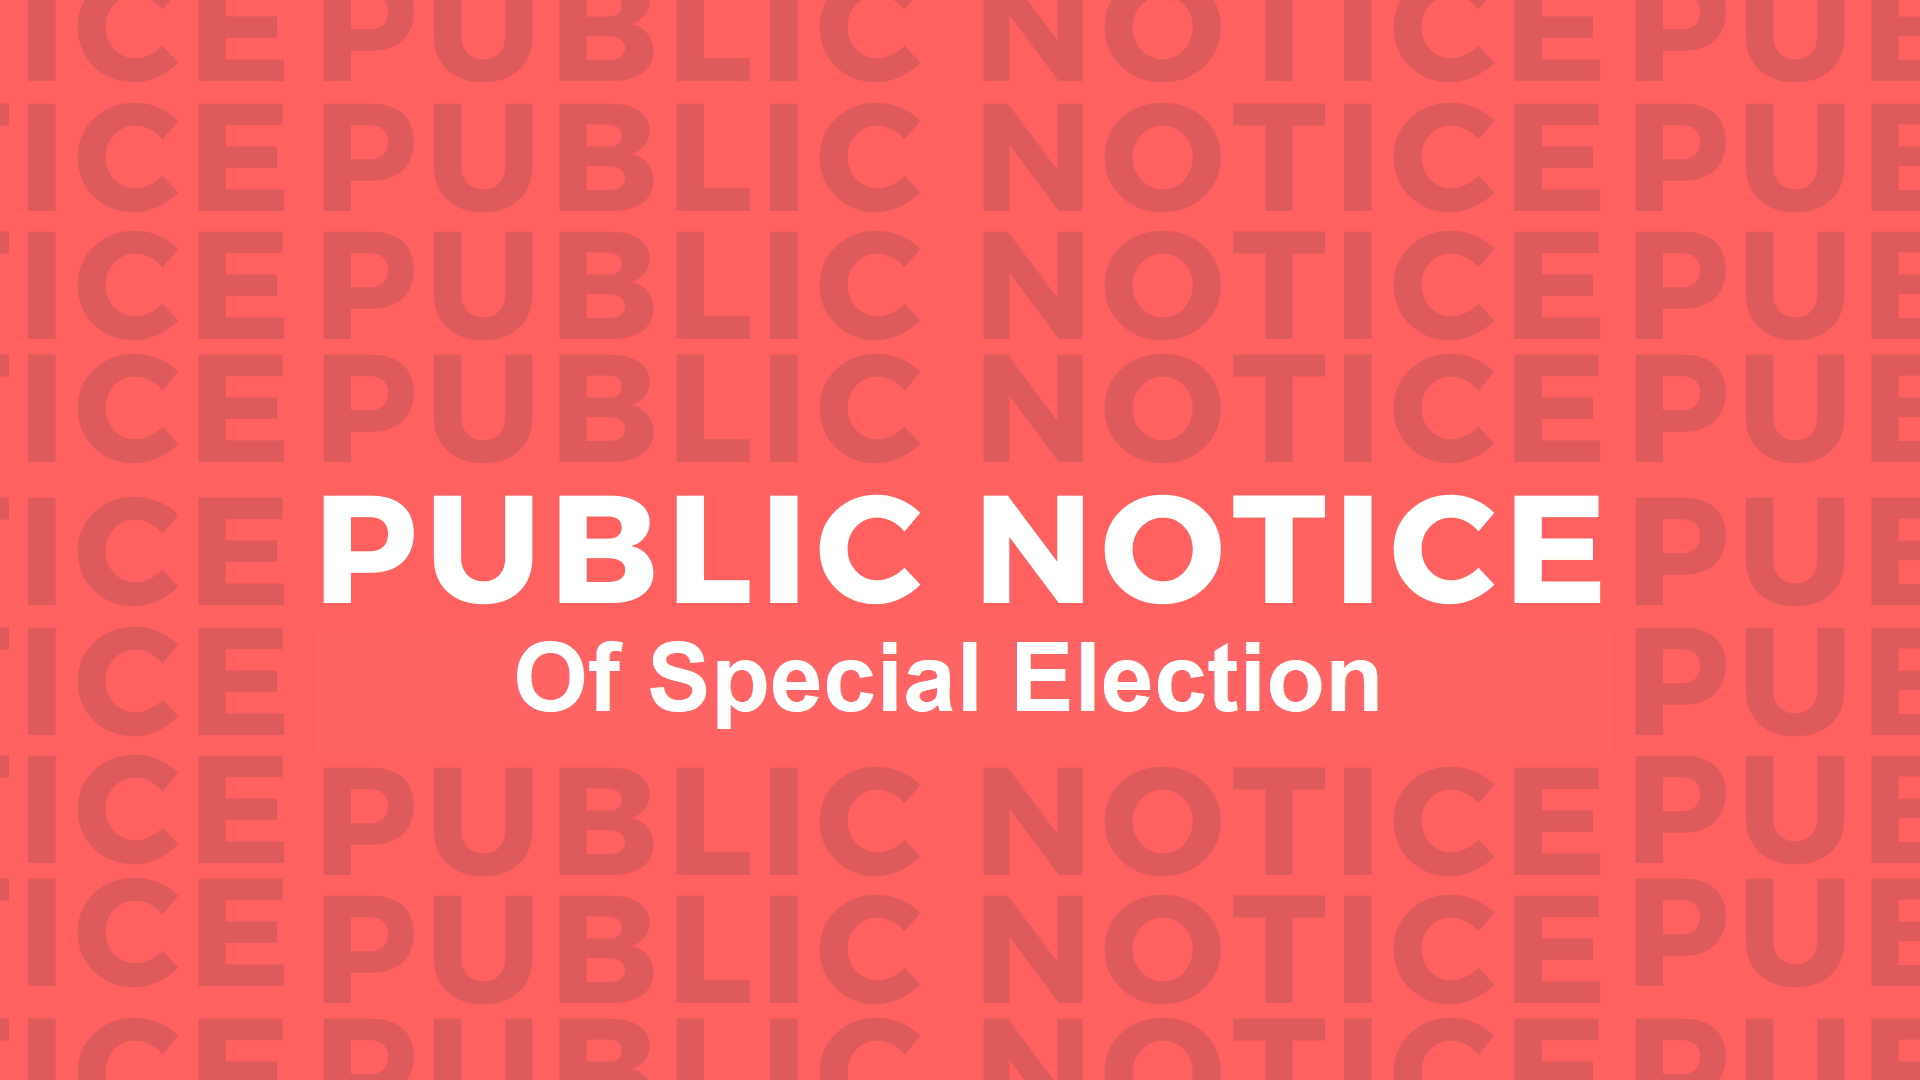 PUBLIC NOTICE OF SPECIAL ELECTION